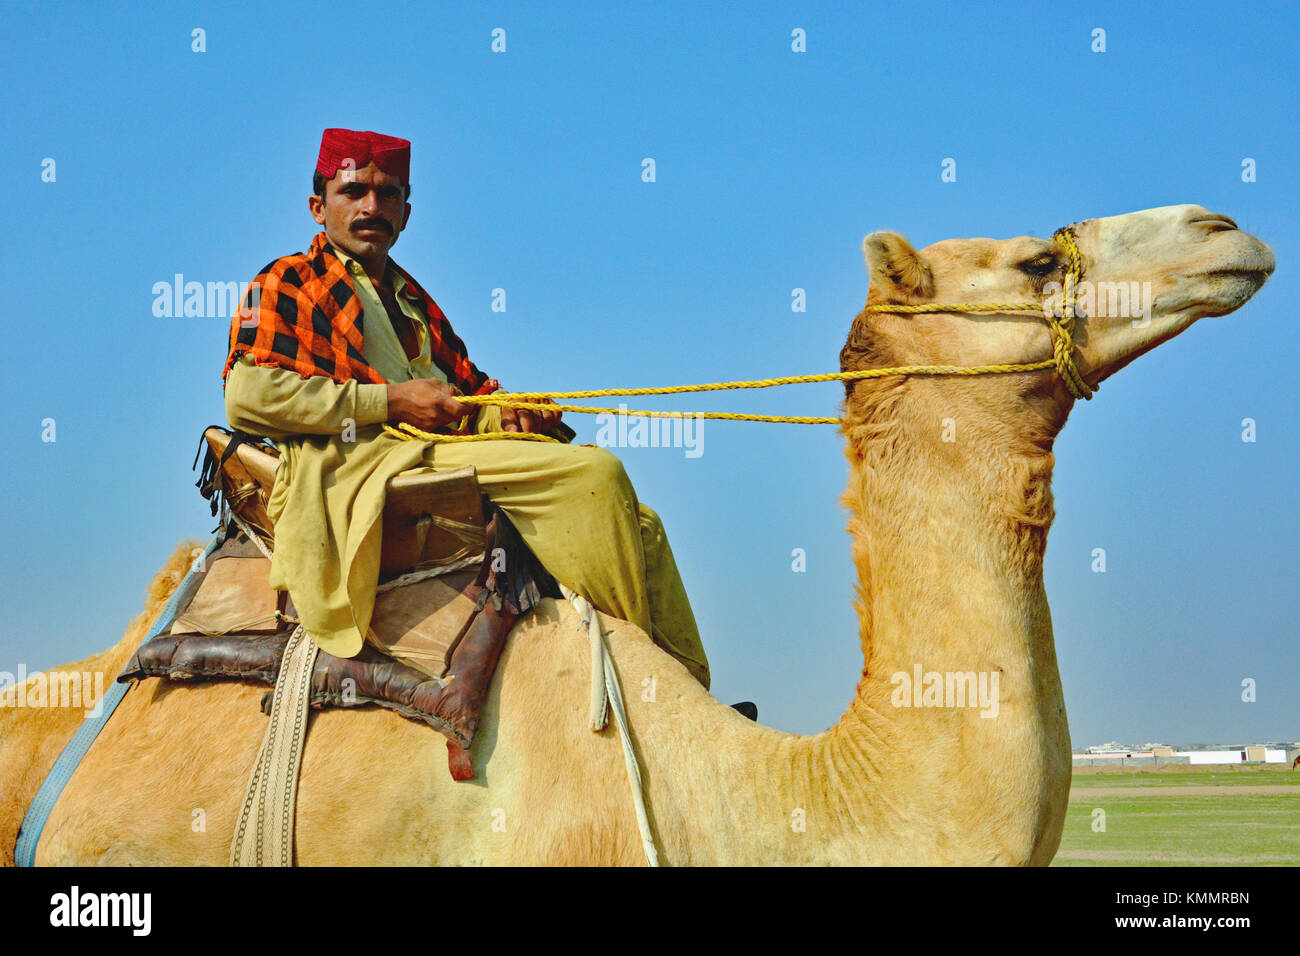 Camel shepherd who kindly let me take his photo while his camels were grazing. Al Lith region just outside of Mecca, - Stock Image